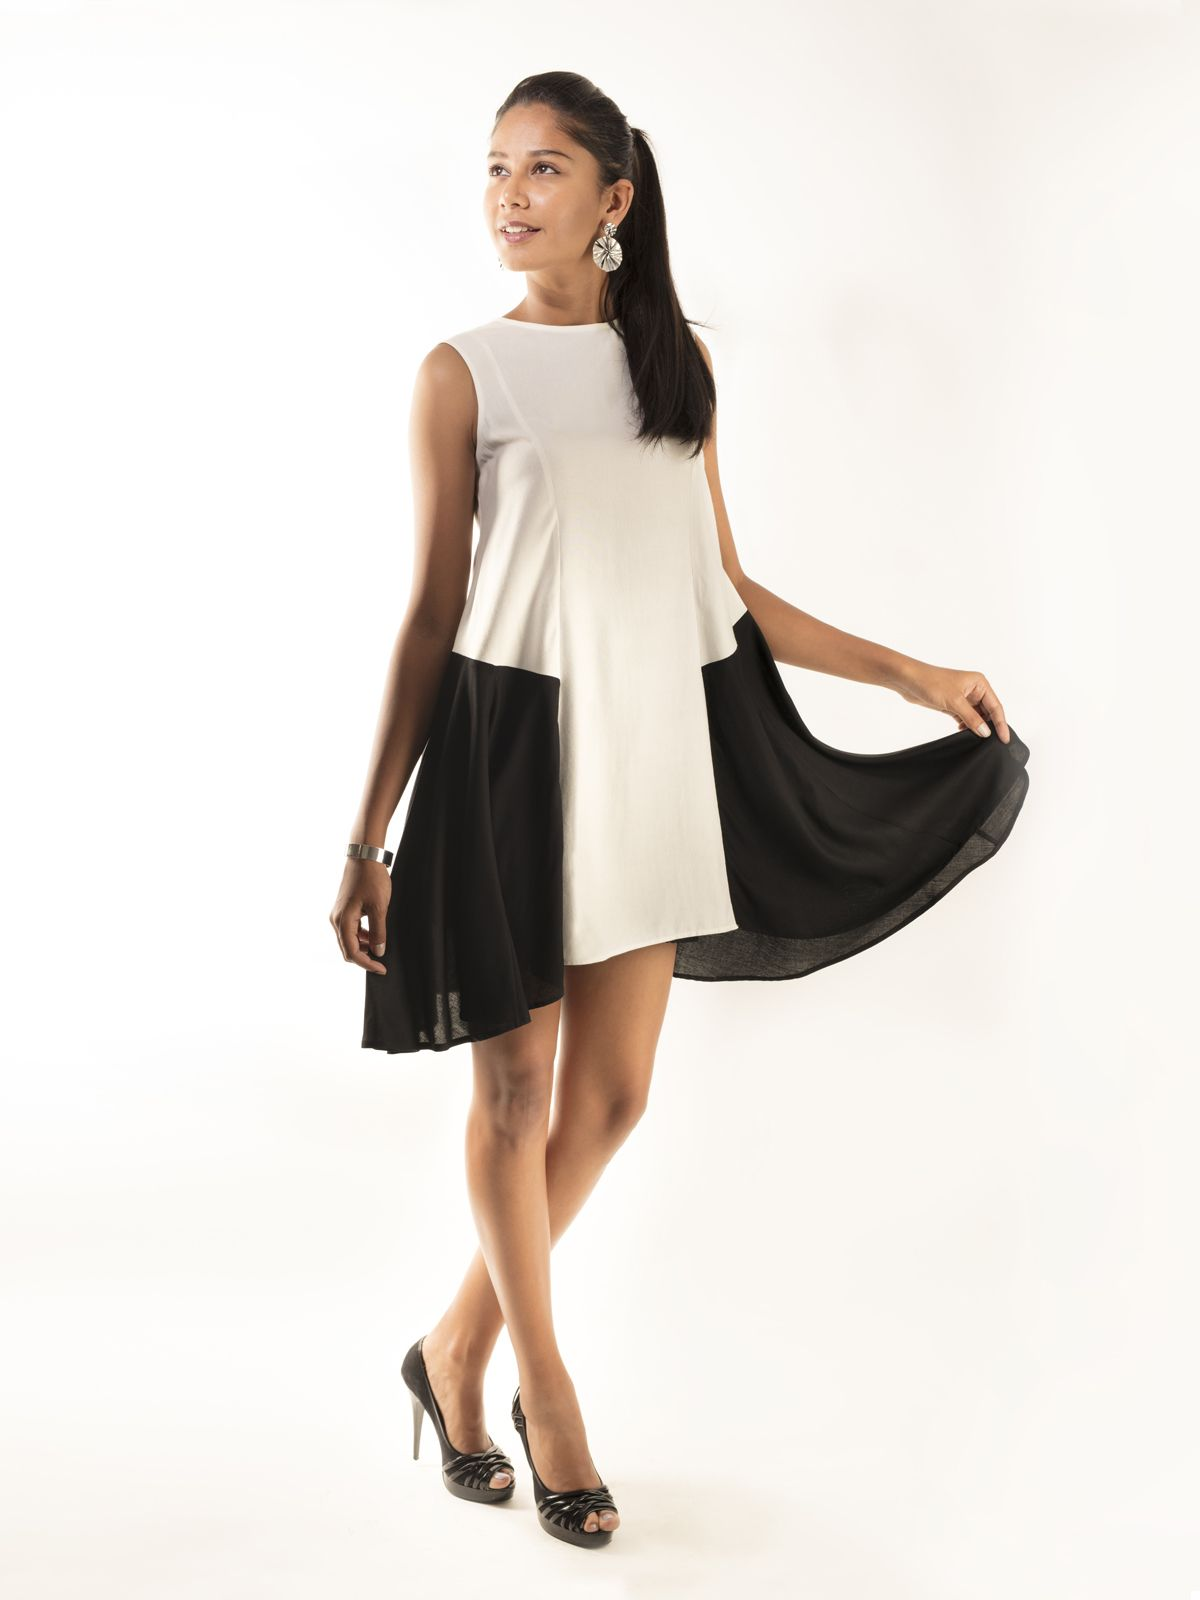 Light and free flowing summer cotton dress is perfect for a classy